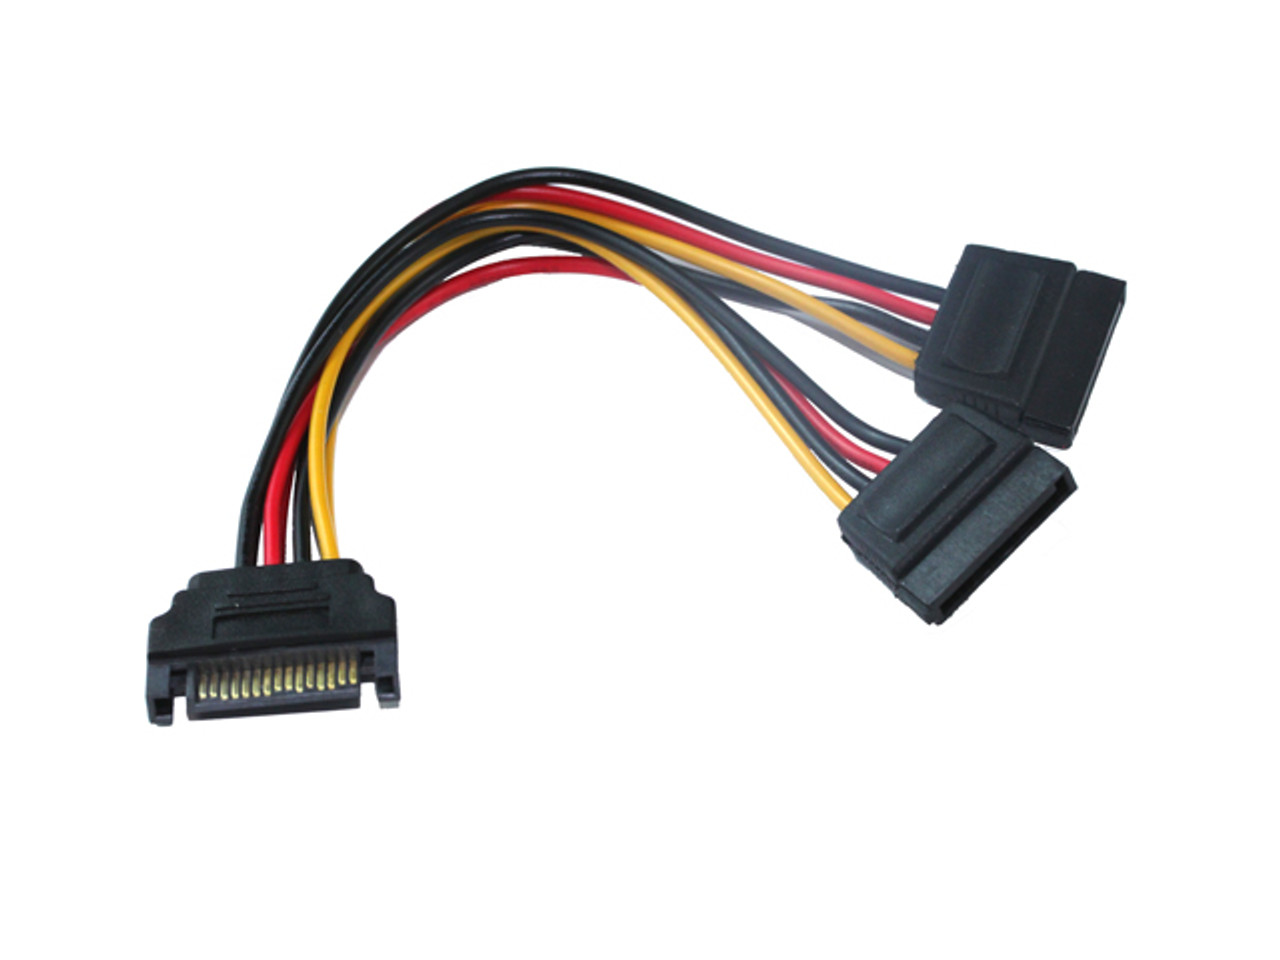 Product image for 20CM SATA Power Splitter Cable | CX Computer Superstore